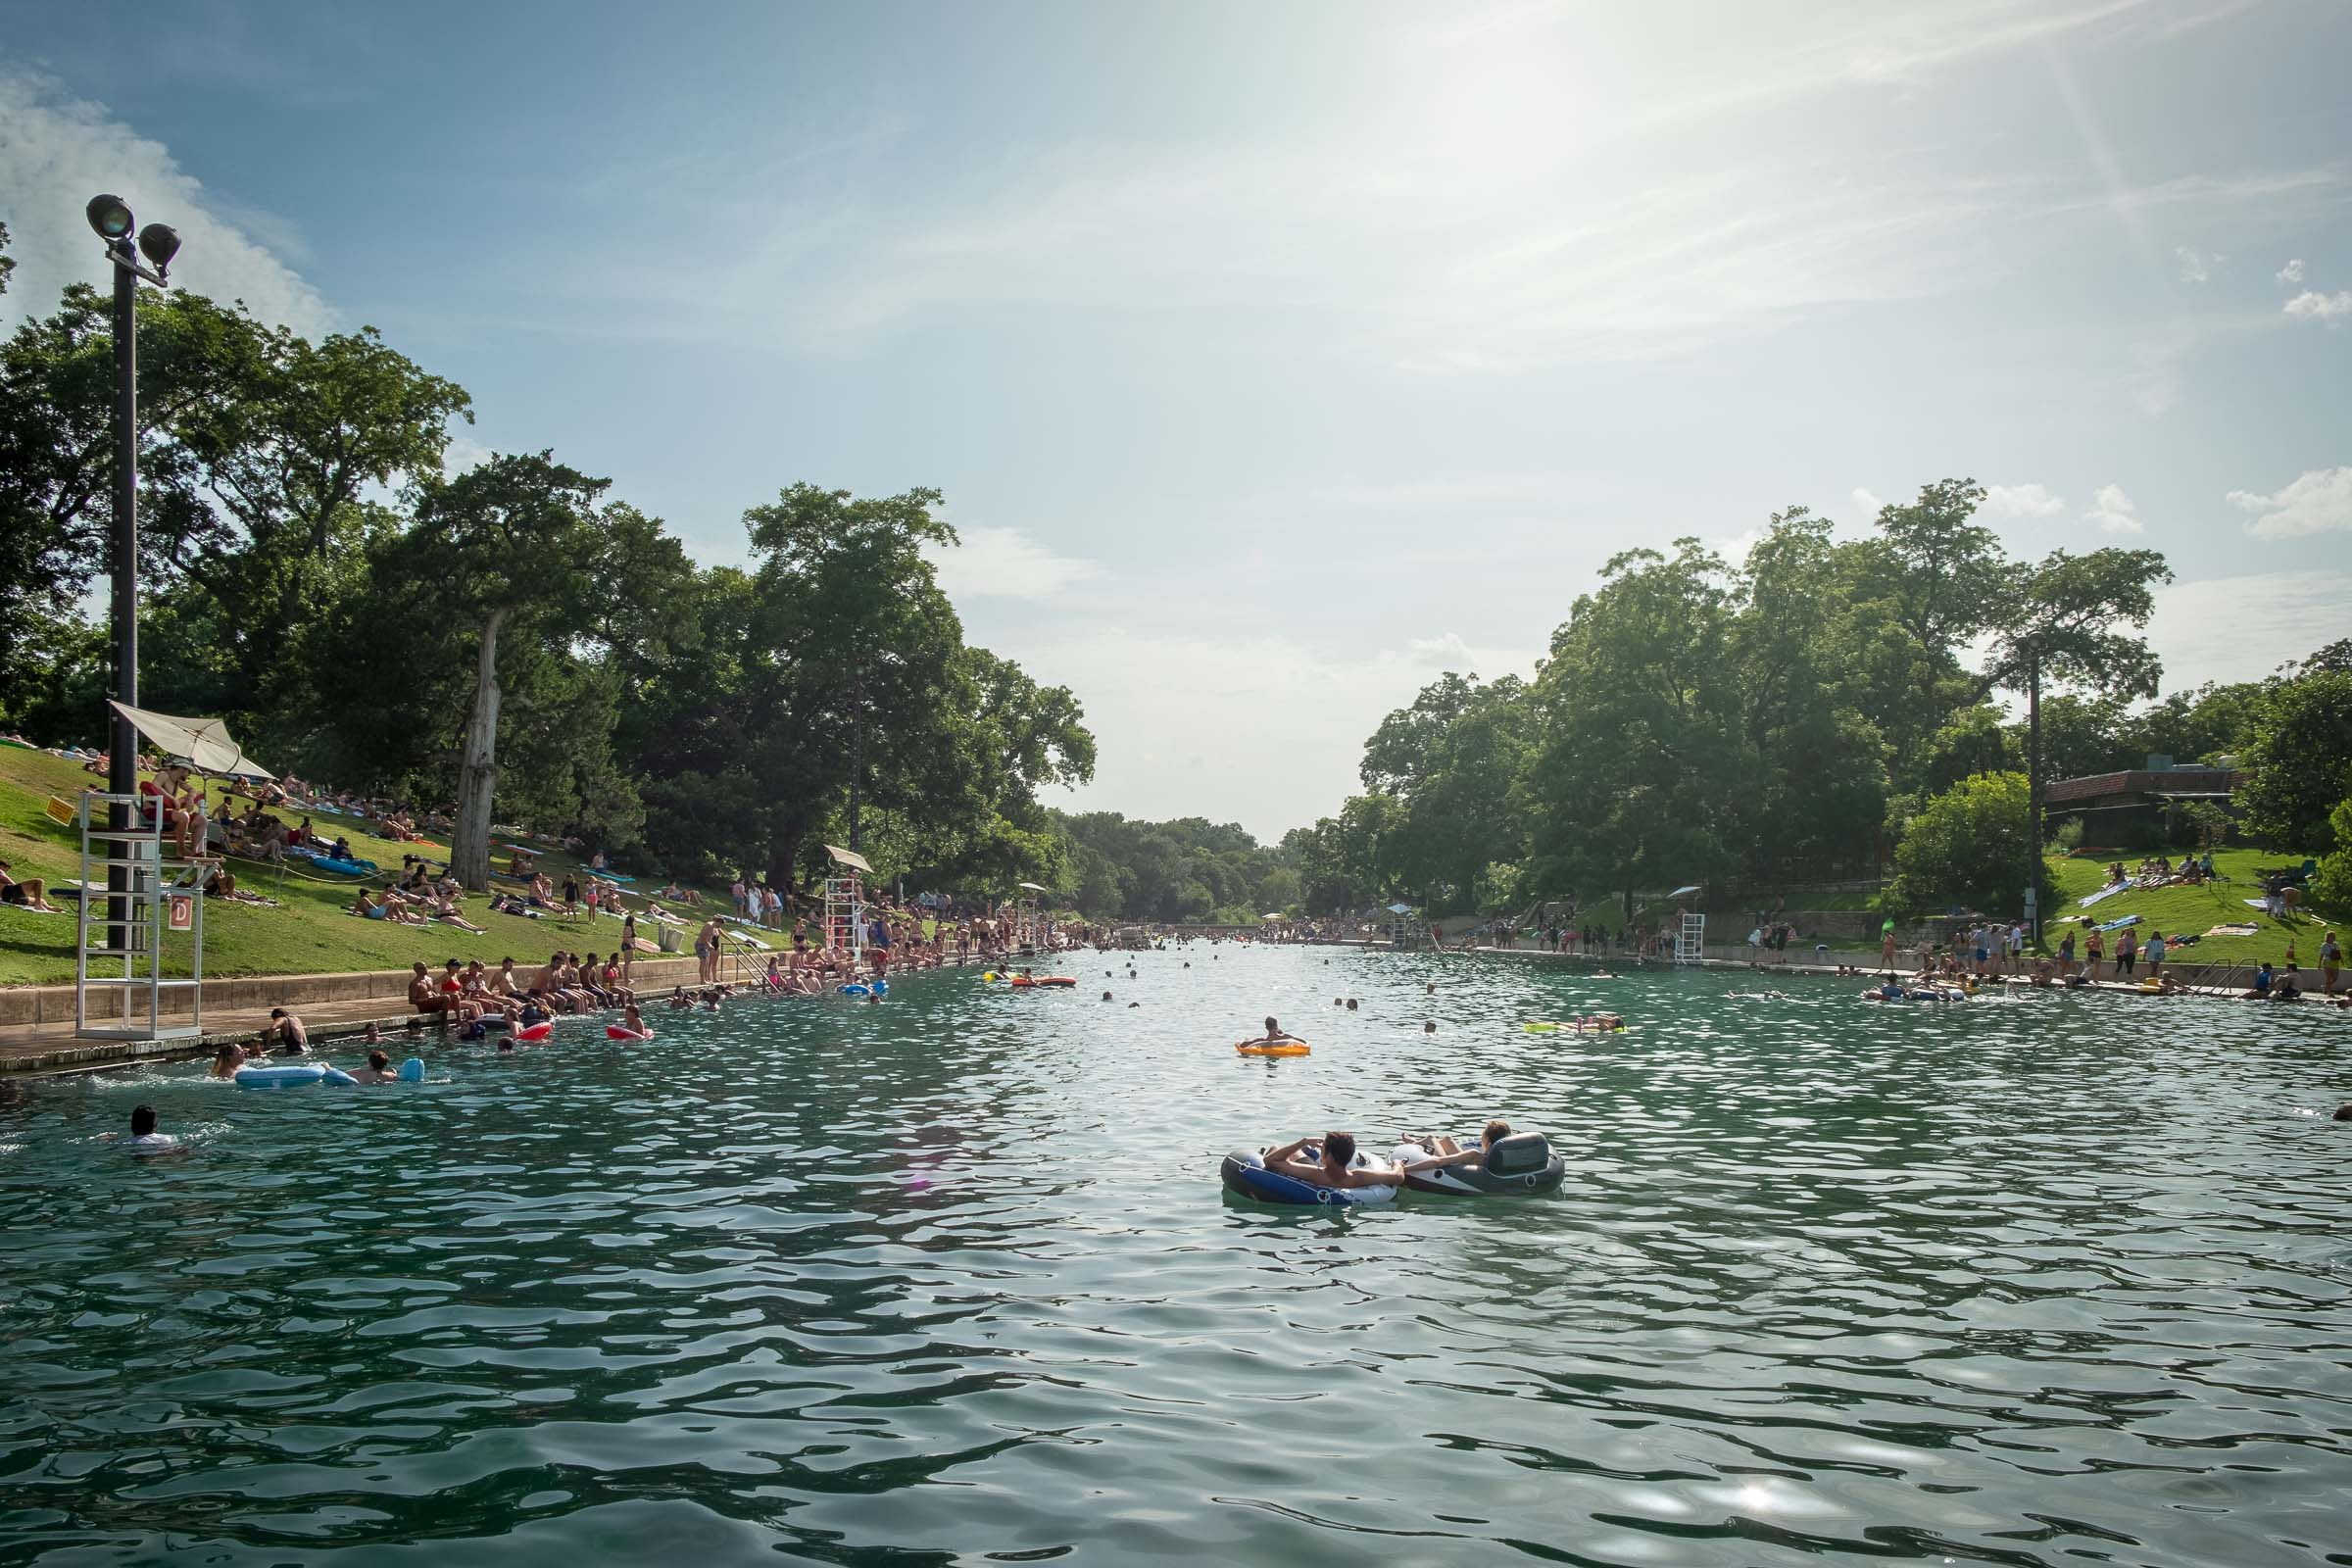 Bathers enjoying  Austin